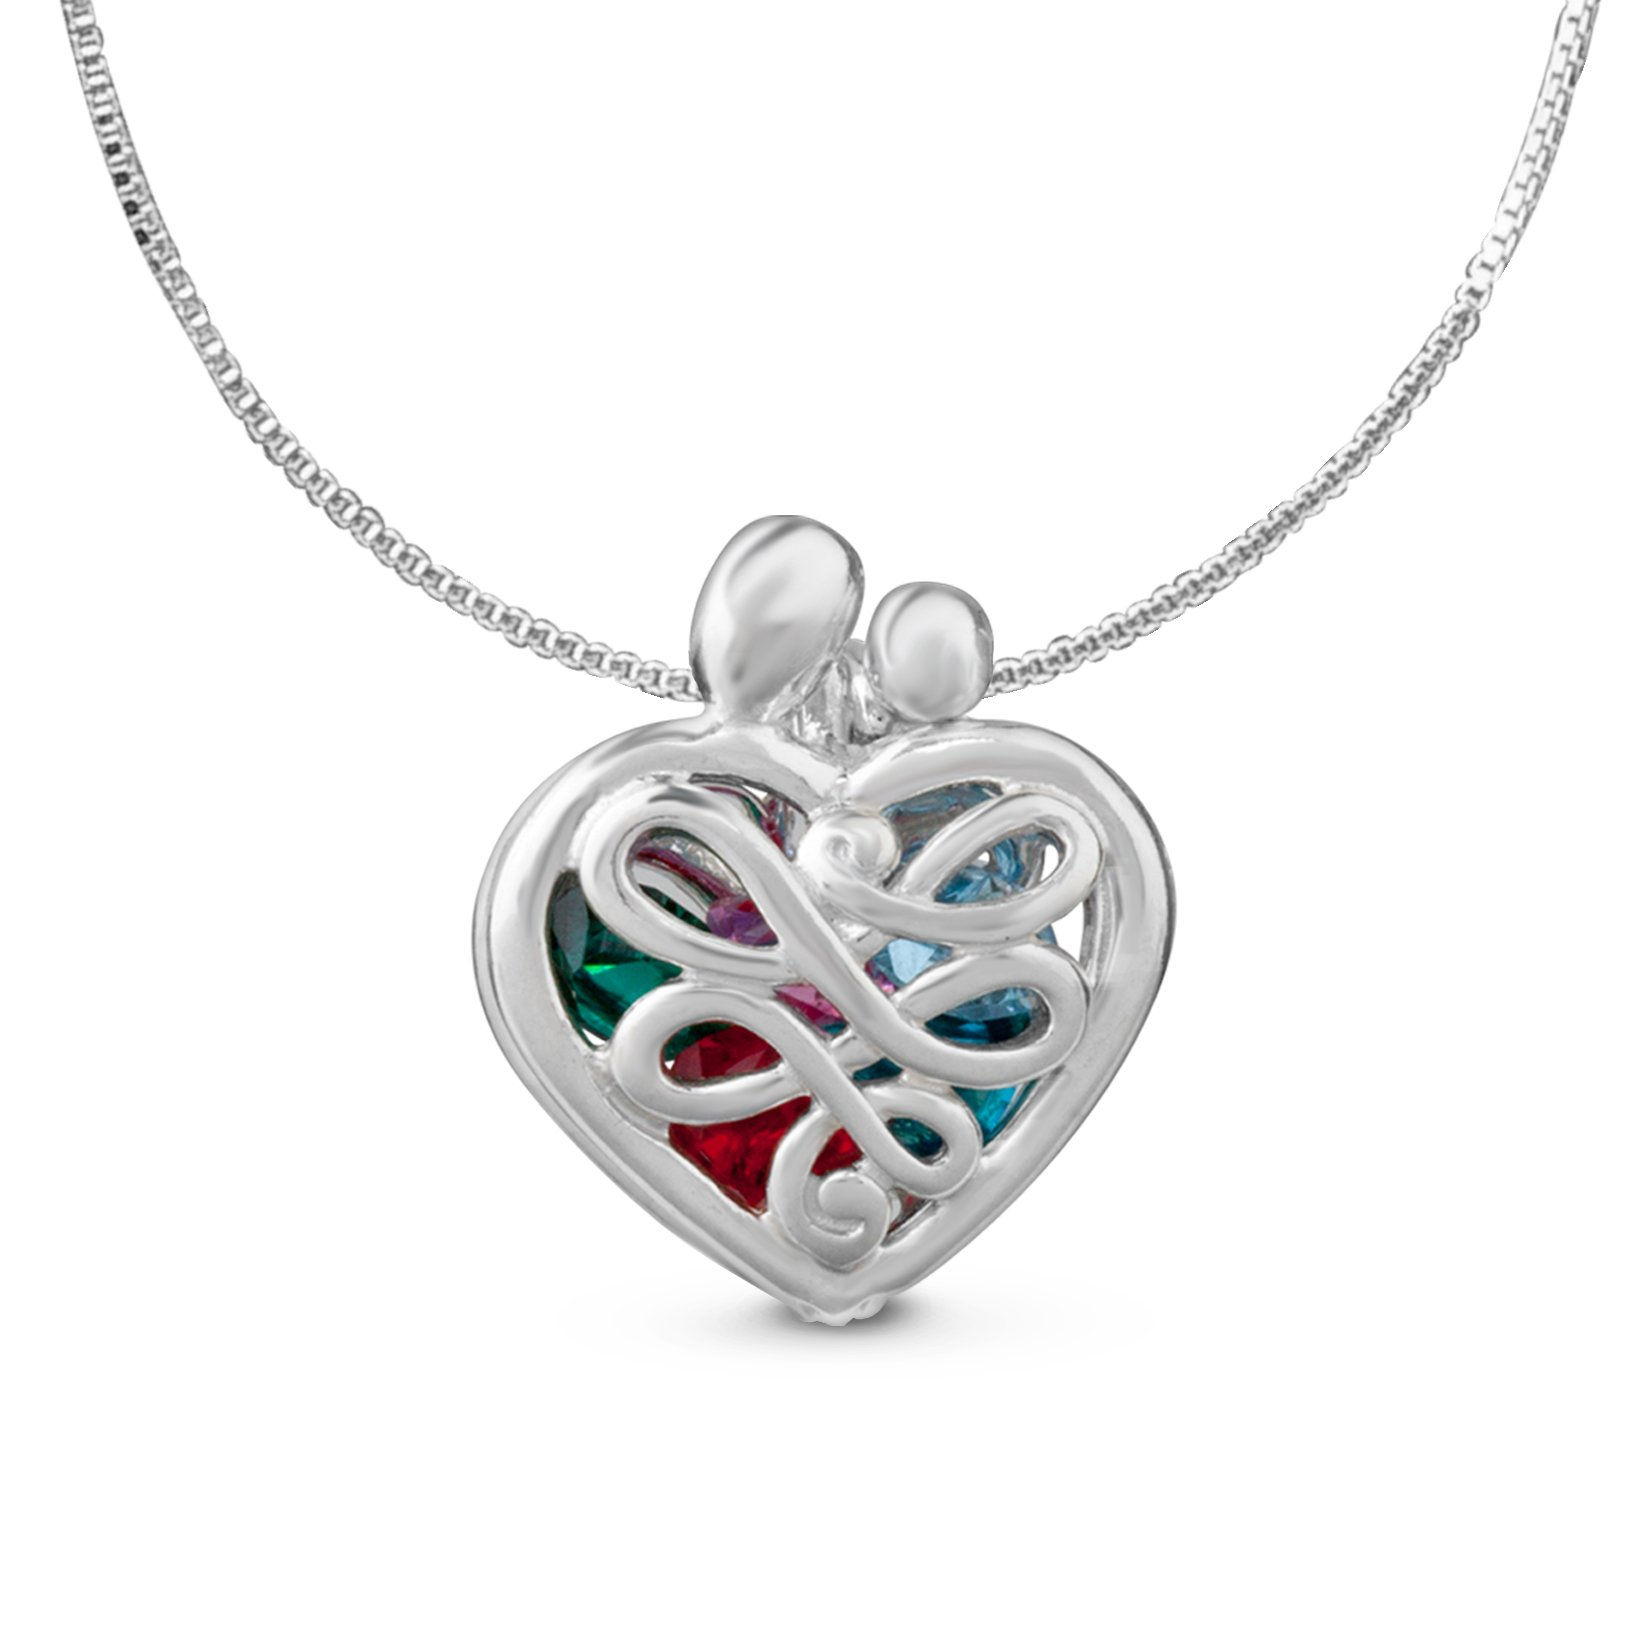 Loving Family - Sterling Silver Small Heart Locket with 12 Birthstones - 20'' Long